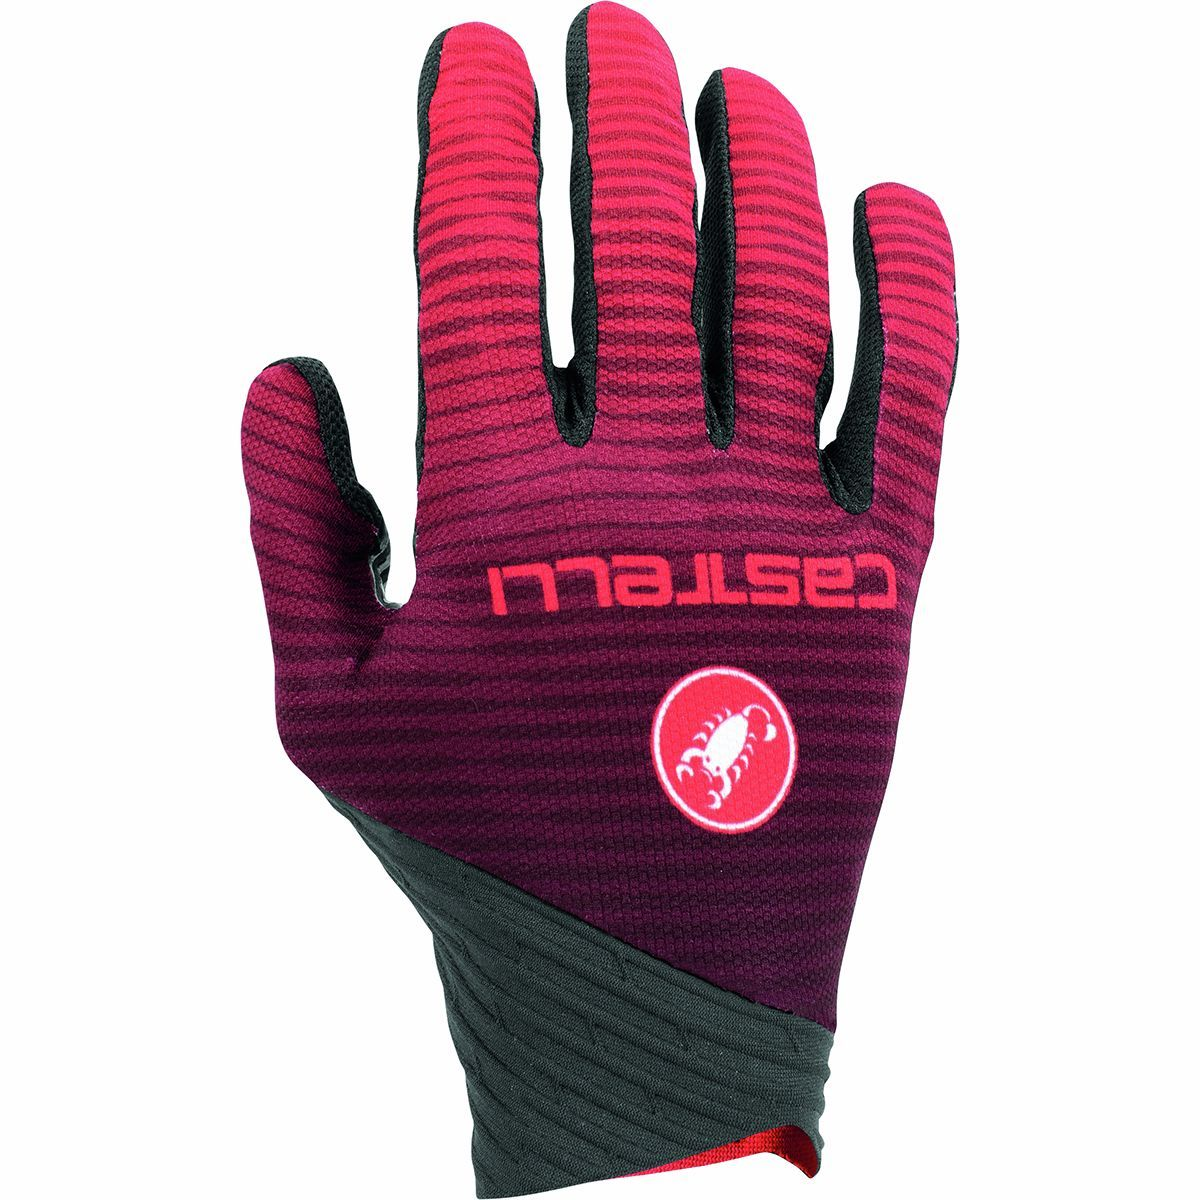 Cw 6 1 Cross Glove Gloves Black And Red Mens Gloves